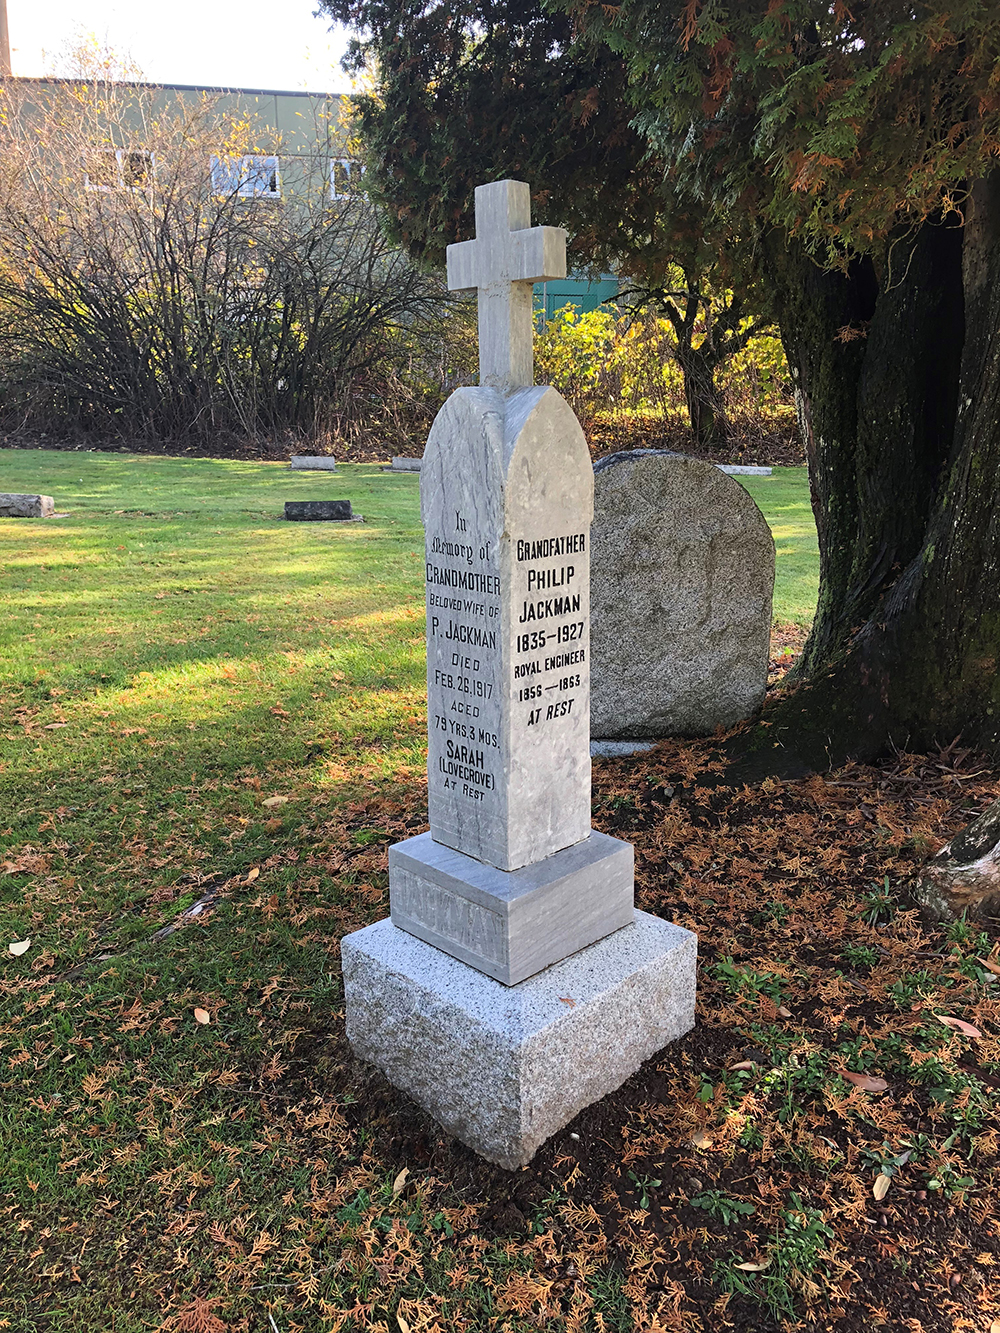 A photograph of a four-sided headstone in a graveyard. The left side of the headstone commemorates the life of Sarah Ann Lovegrove and the right side commemorates Philip Jackman.